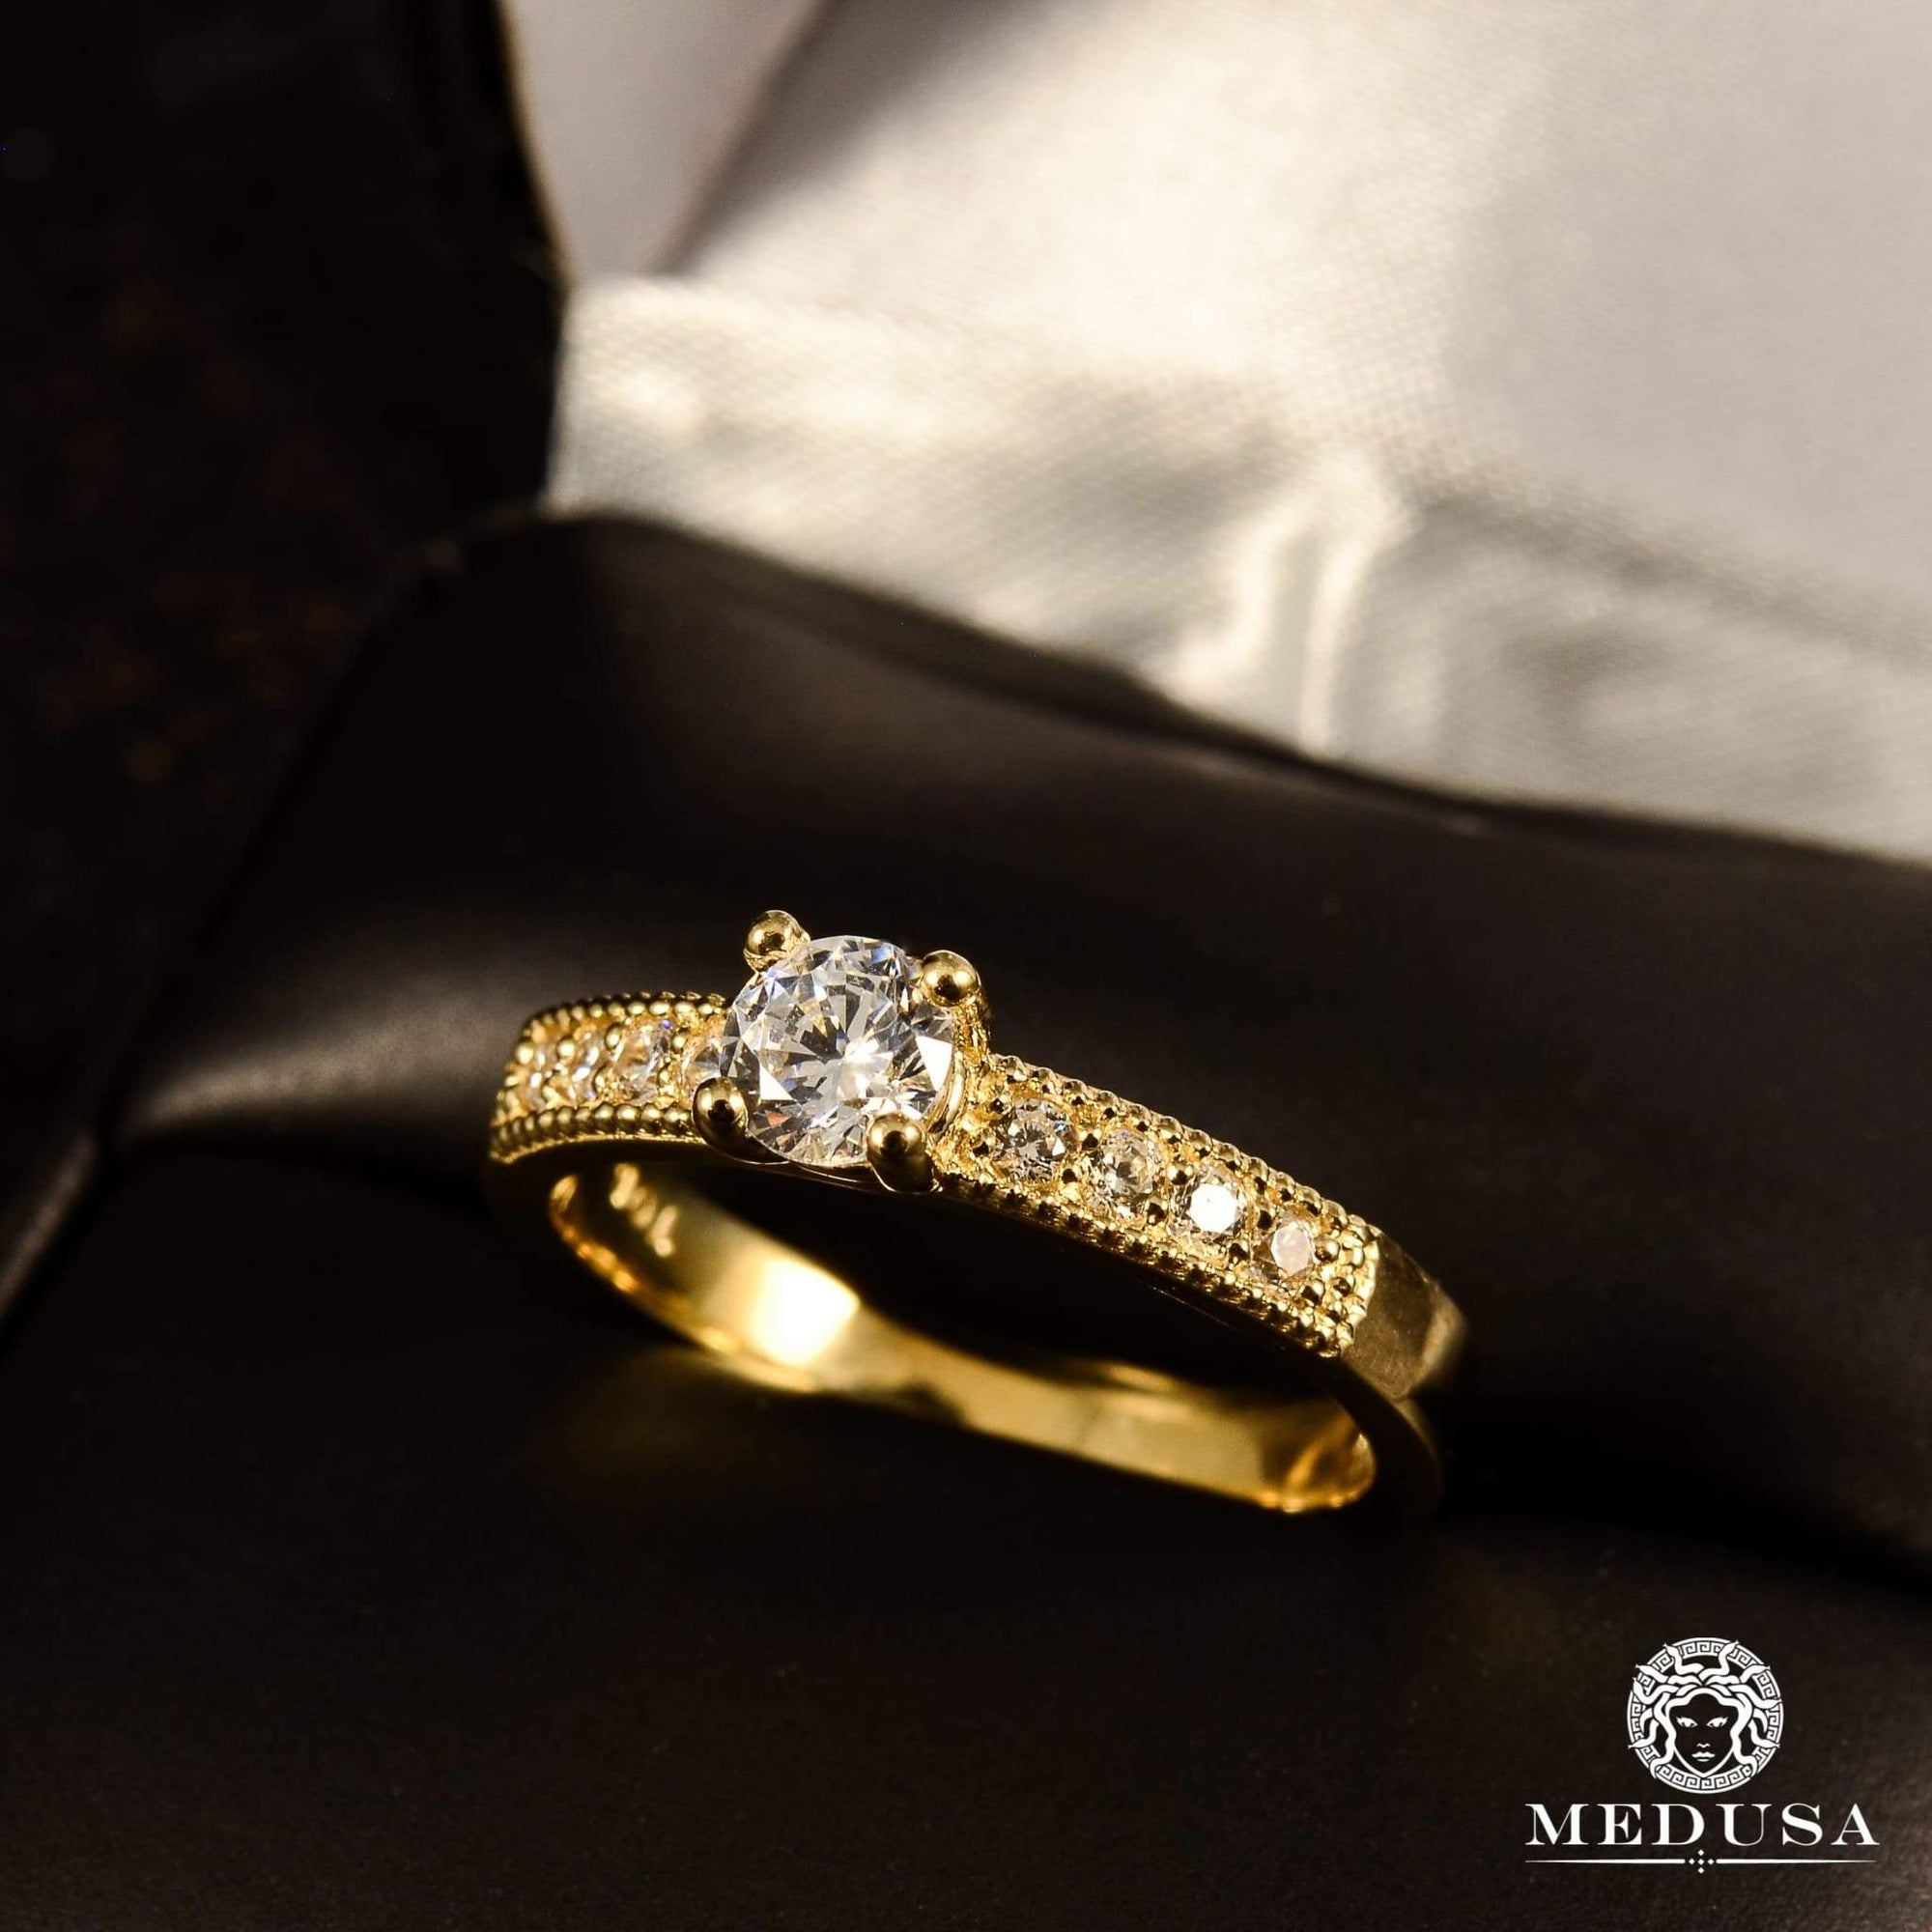 Bague à Diamants en Or 14K | Bague Fiançaille Solitaire F11 - MA0755